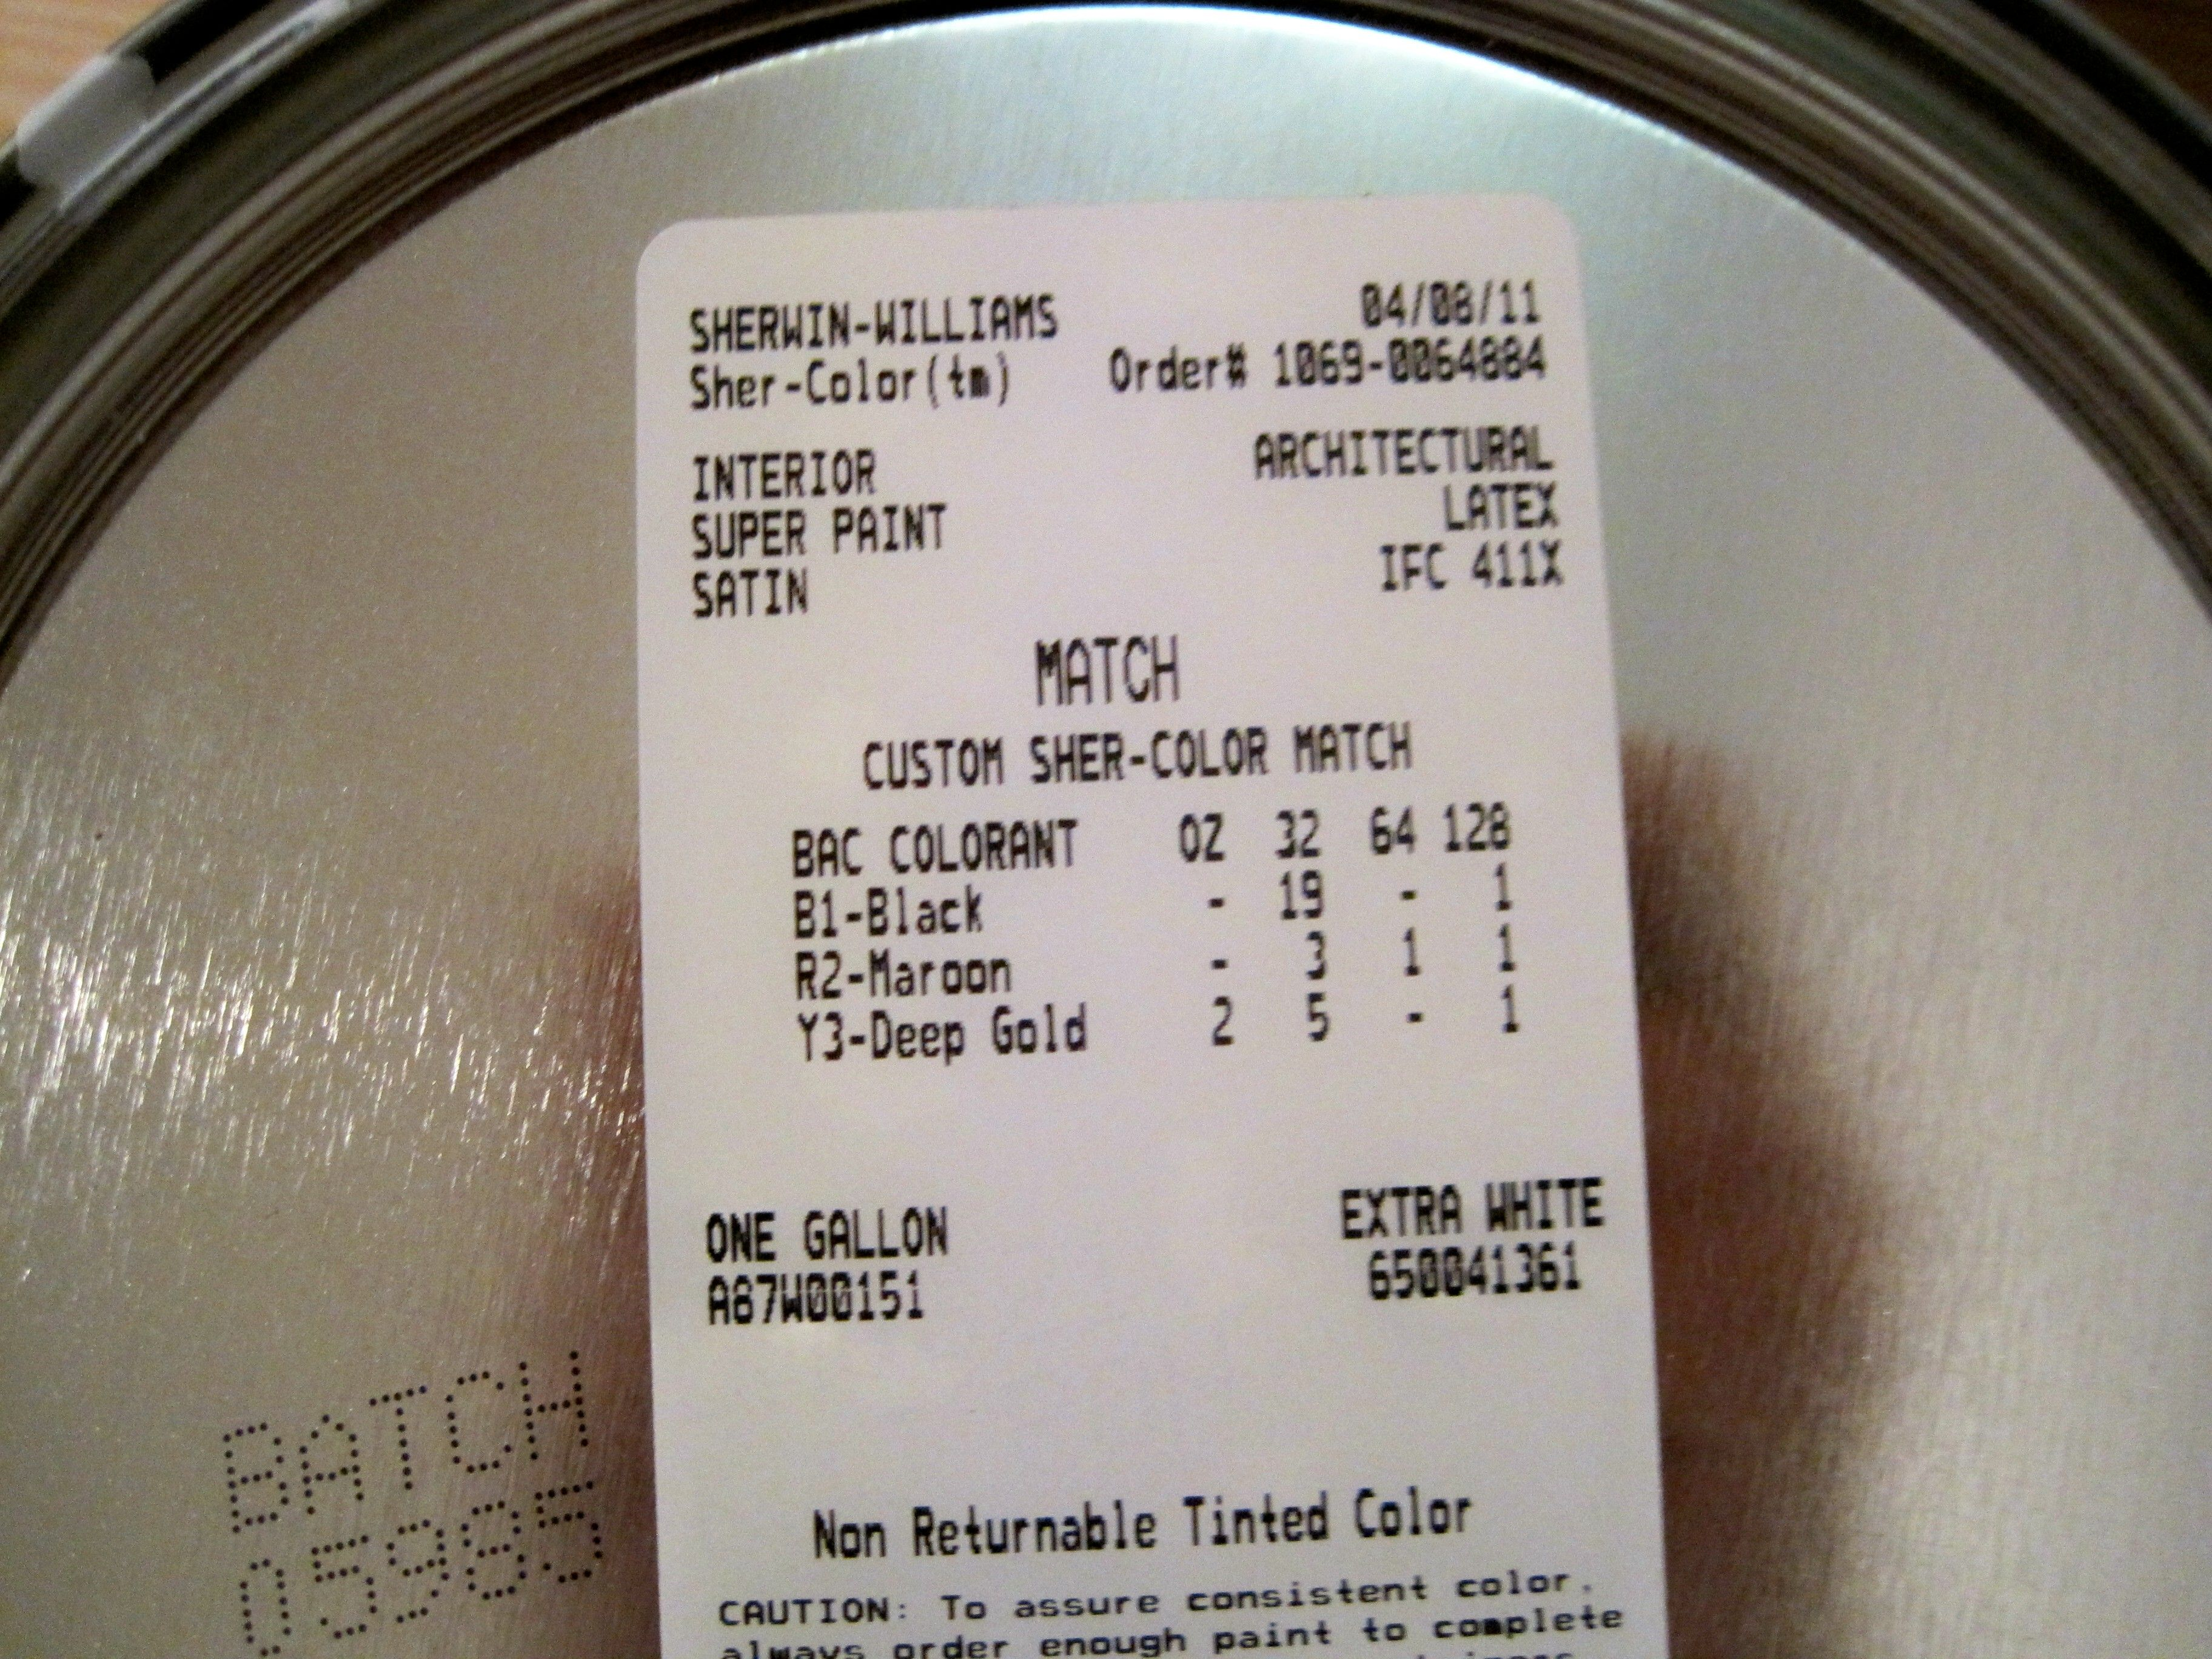 In this case, Sherwin Williams did a good (though not ...